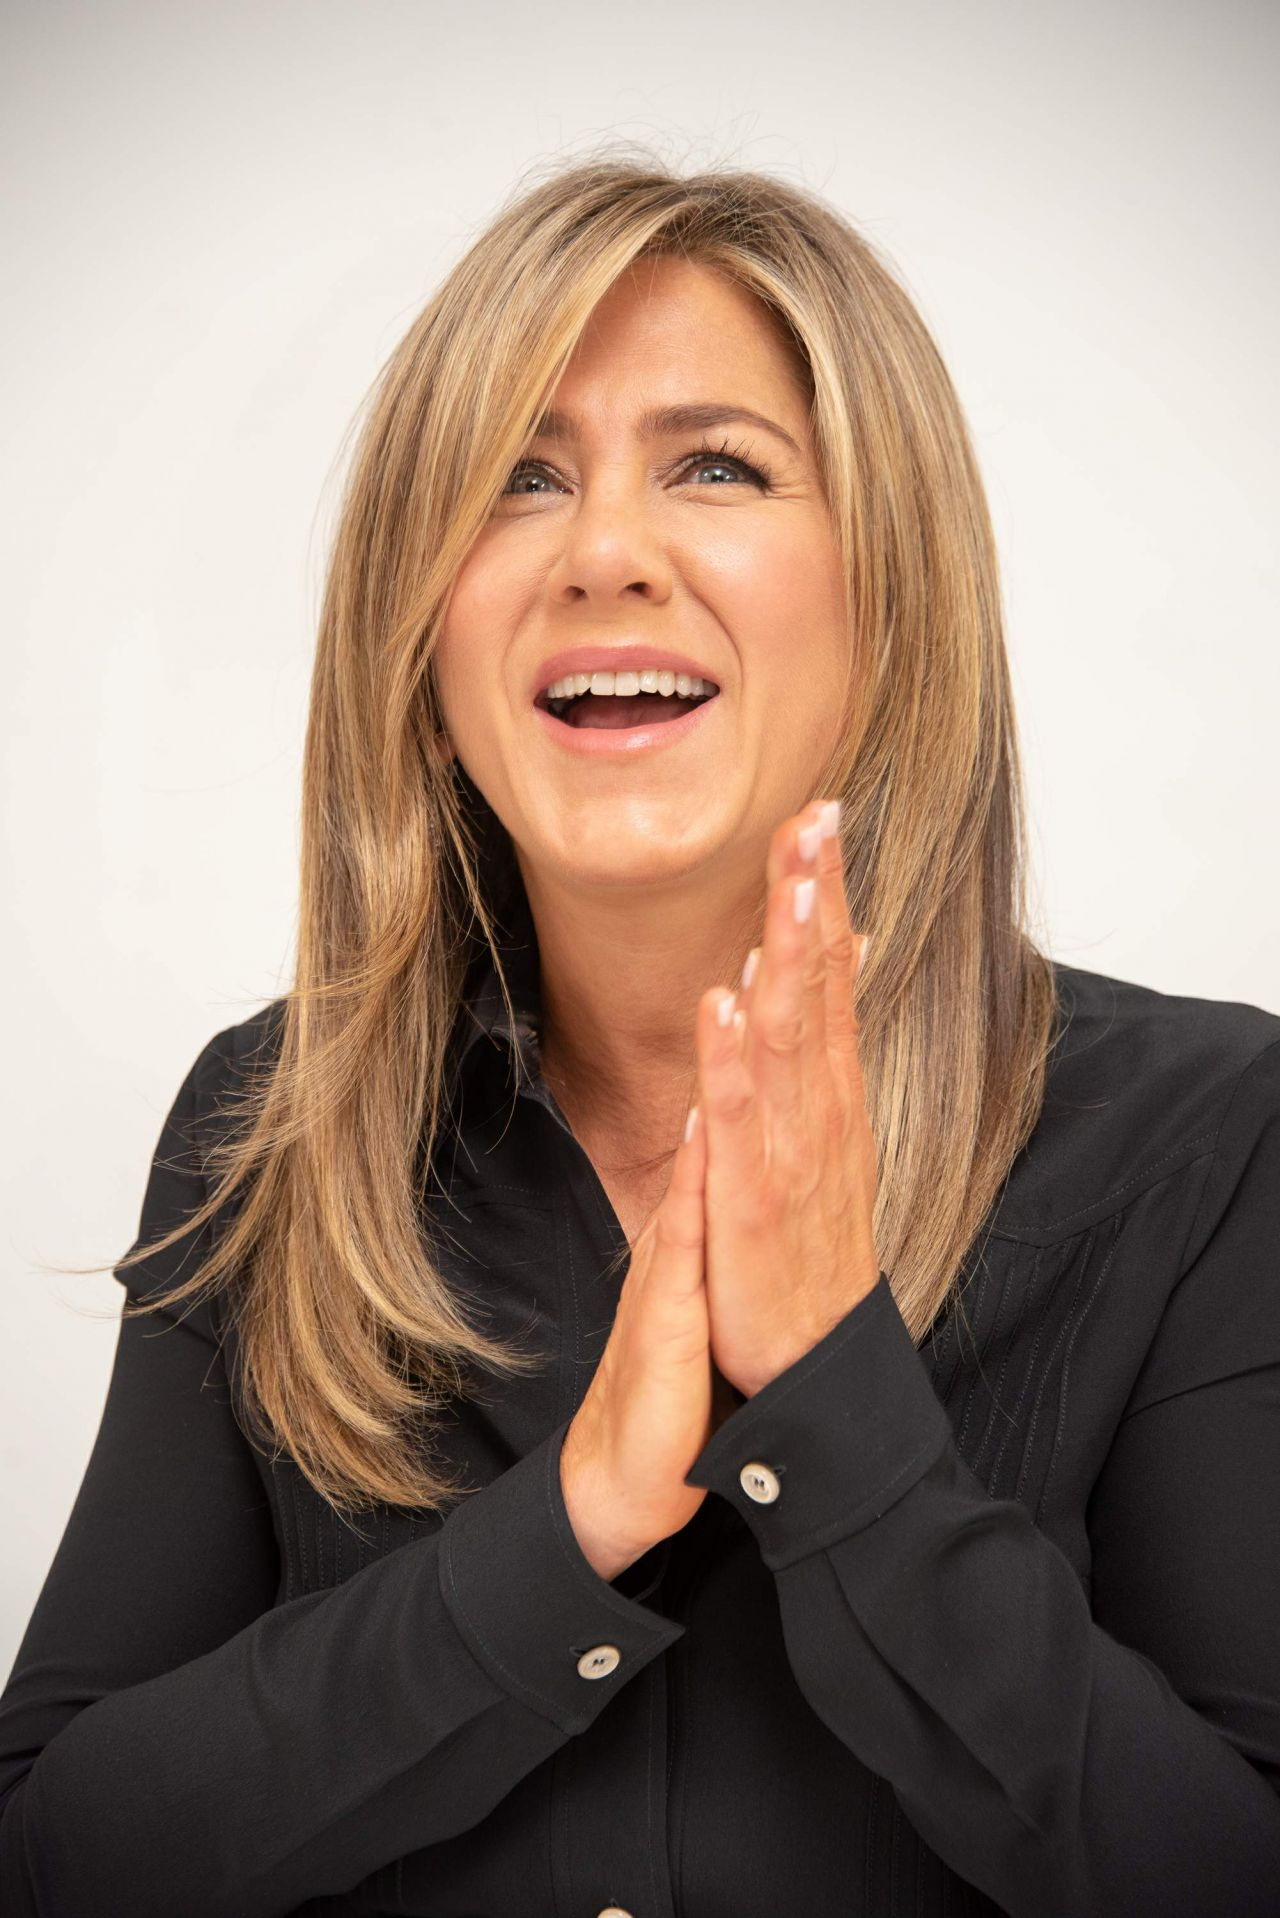 https://celebmafia.com/wp-content/uploads/2018/10/jennifer-aniston-dumplin-press-conference-in-beverly-hills-4.jpg